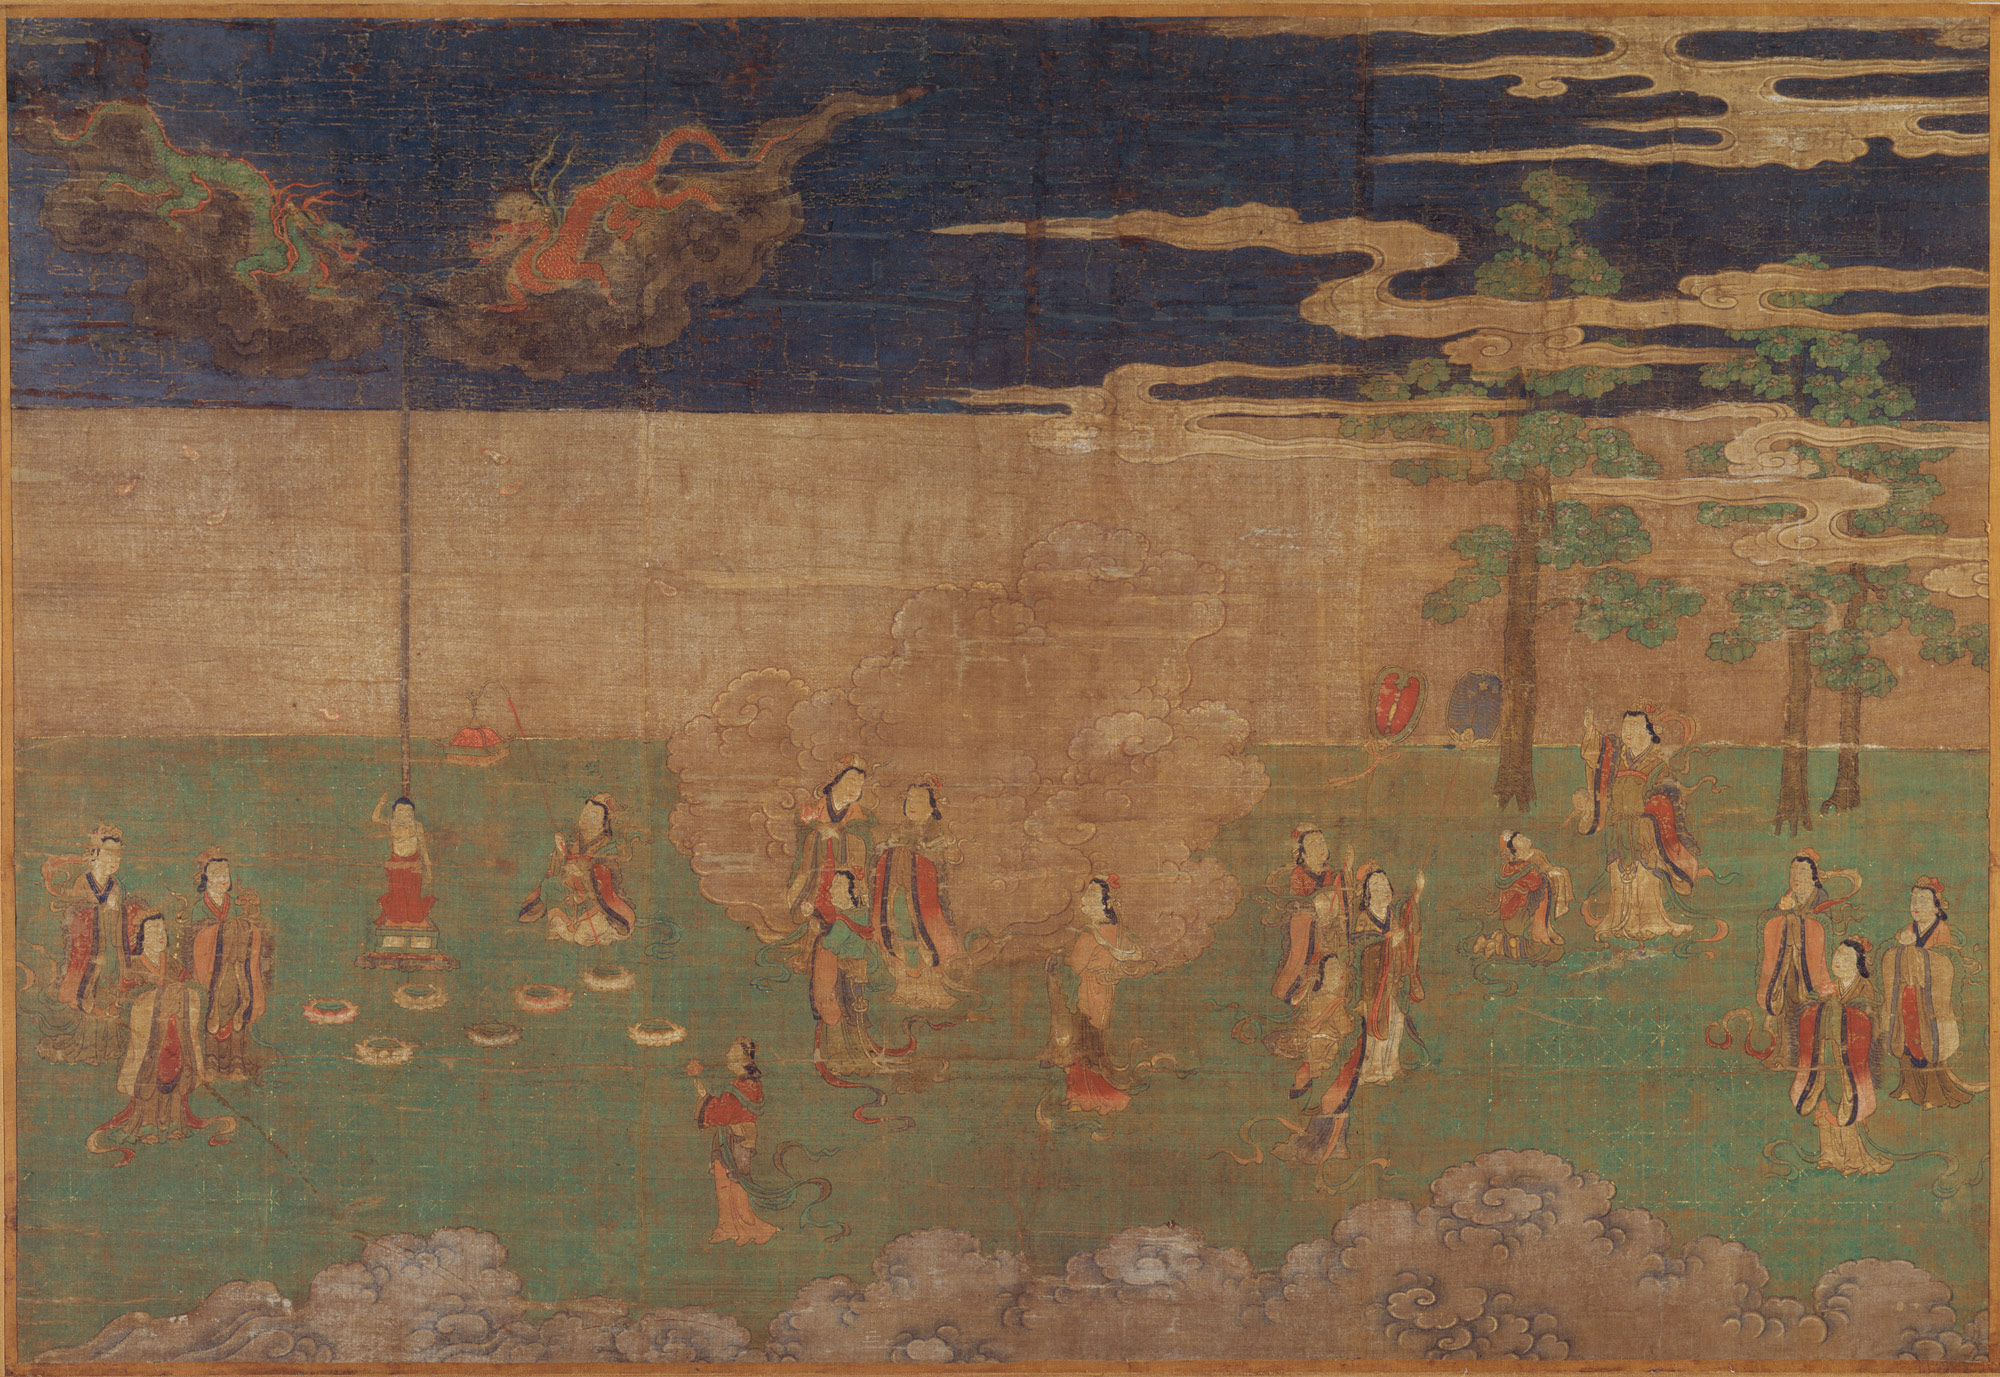 muromachi period essay heilbrunn timeline of art life of the buddha the birth of the buddha